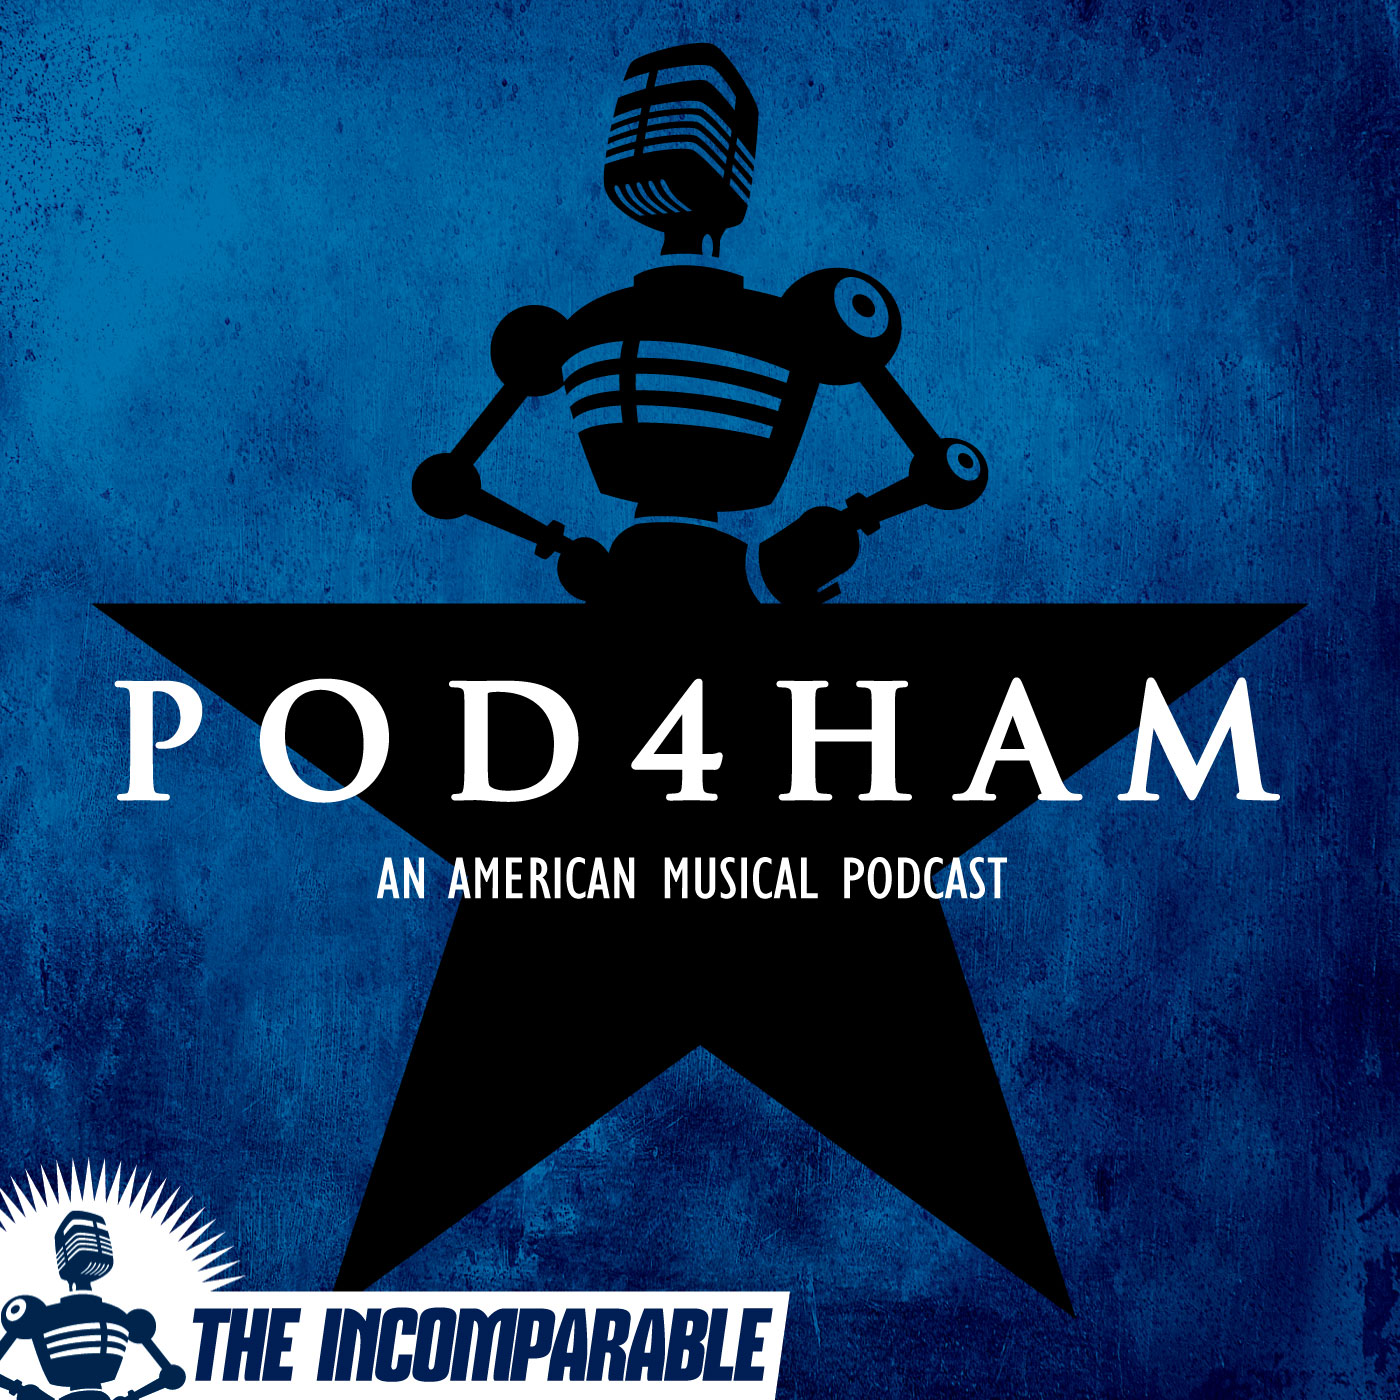 Pod4Ham - a podcast about the musical Hamilton